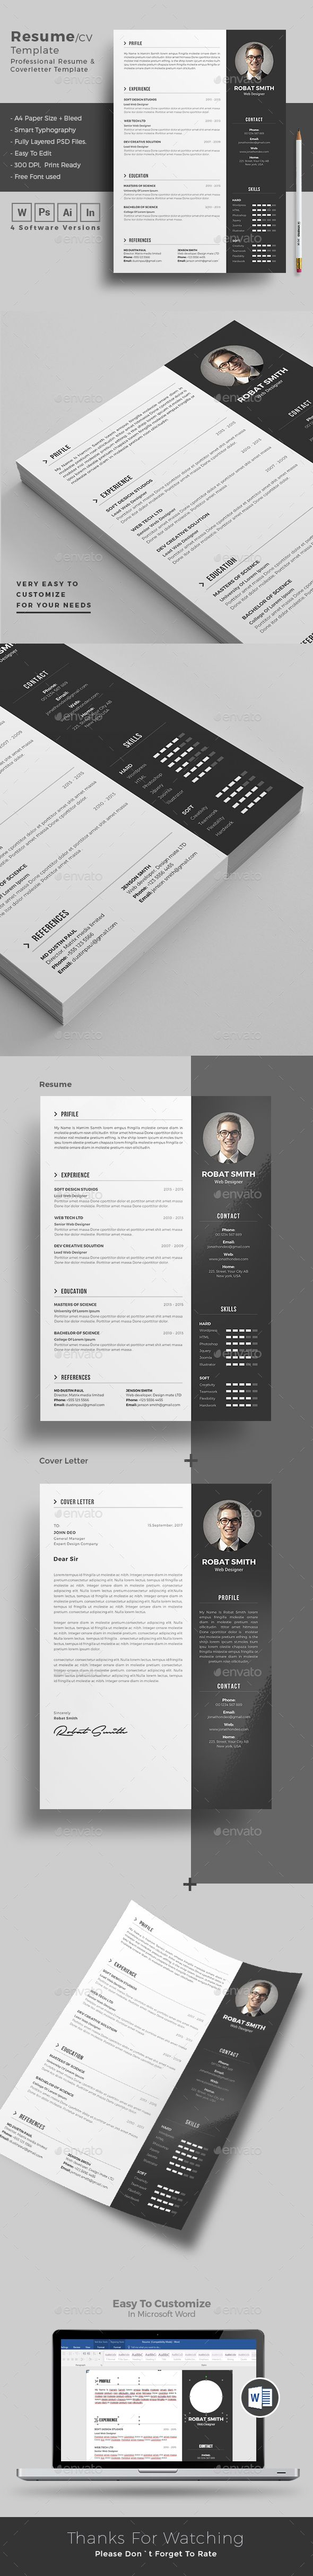 26 best Creative resumes images on Pinterest | Resume templates ...